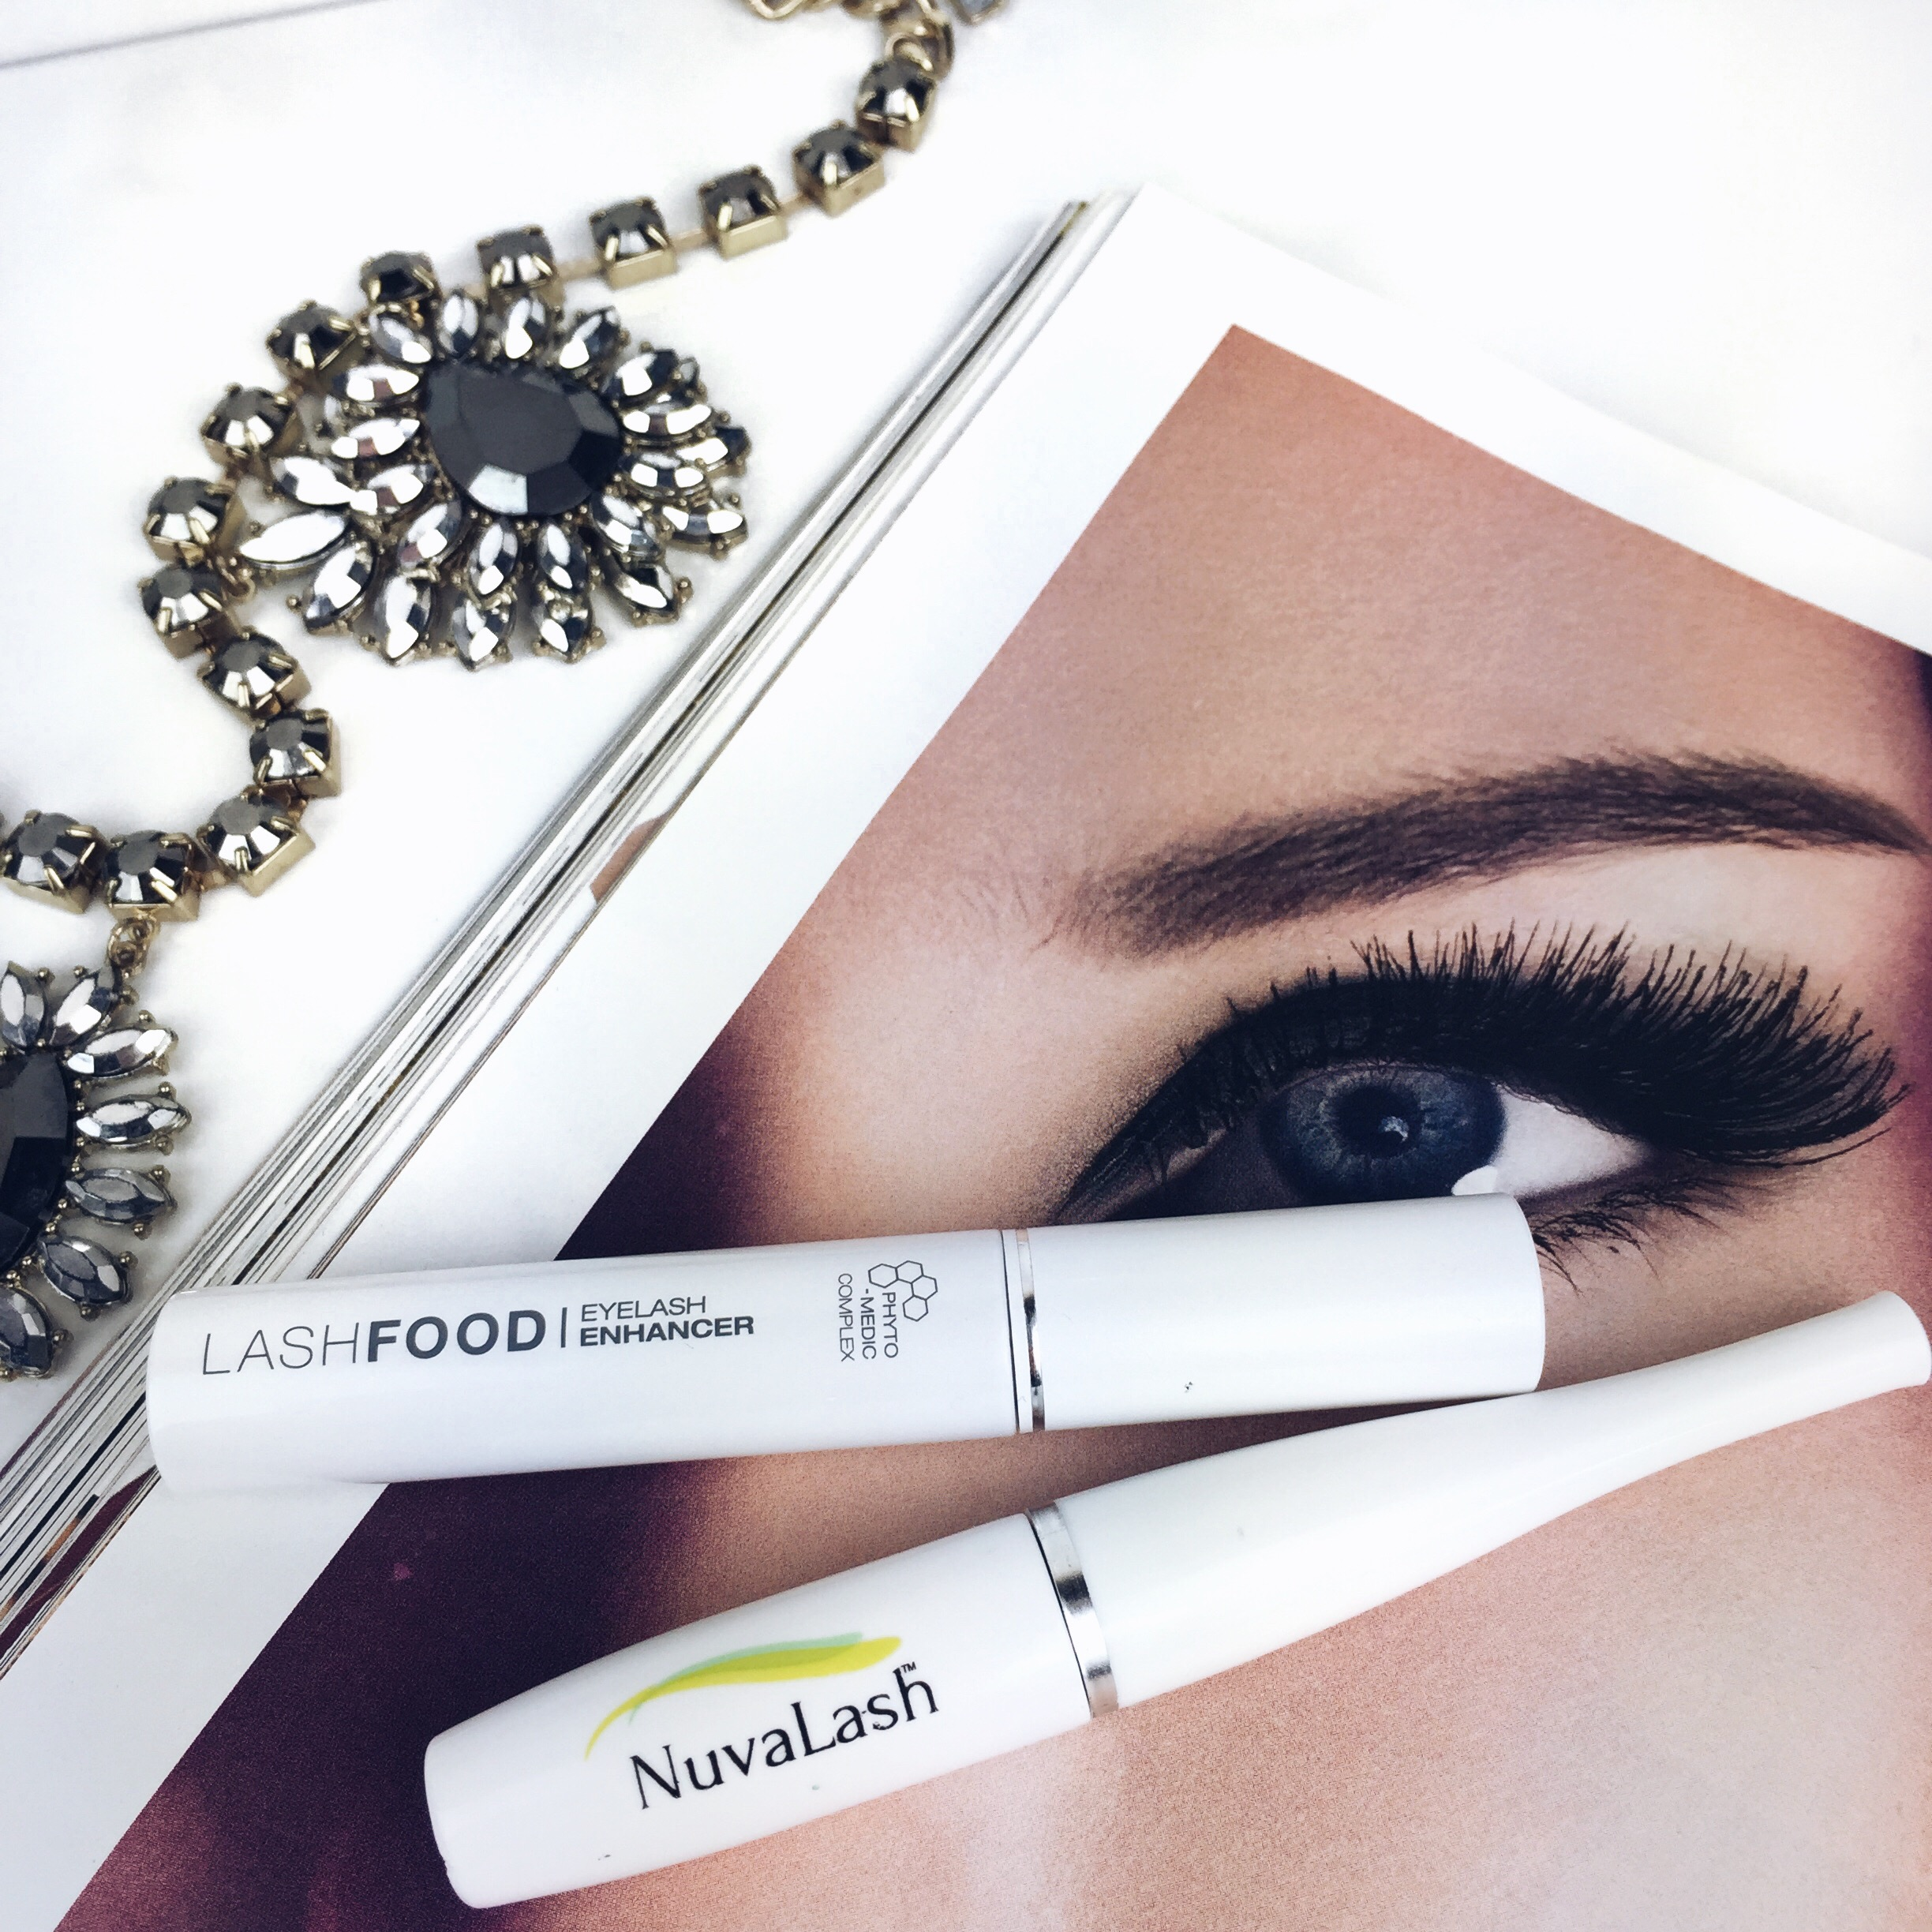 02819169fc2 Just when I thought I found a great new natural lash serum, yet another is  released and has me wondering now, which one is truly the best!?